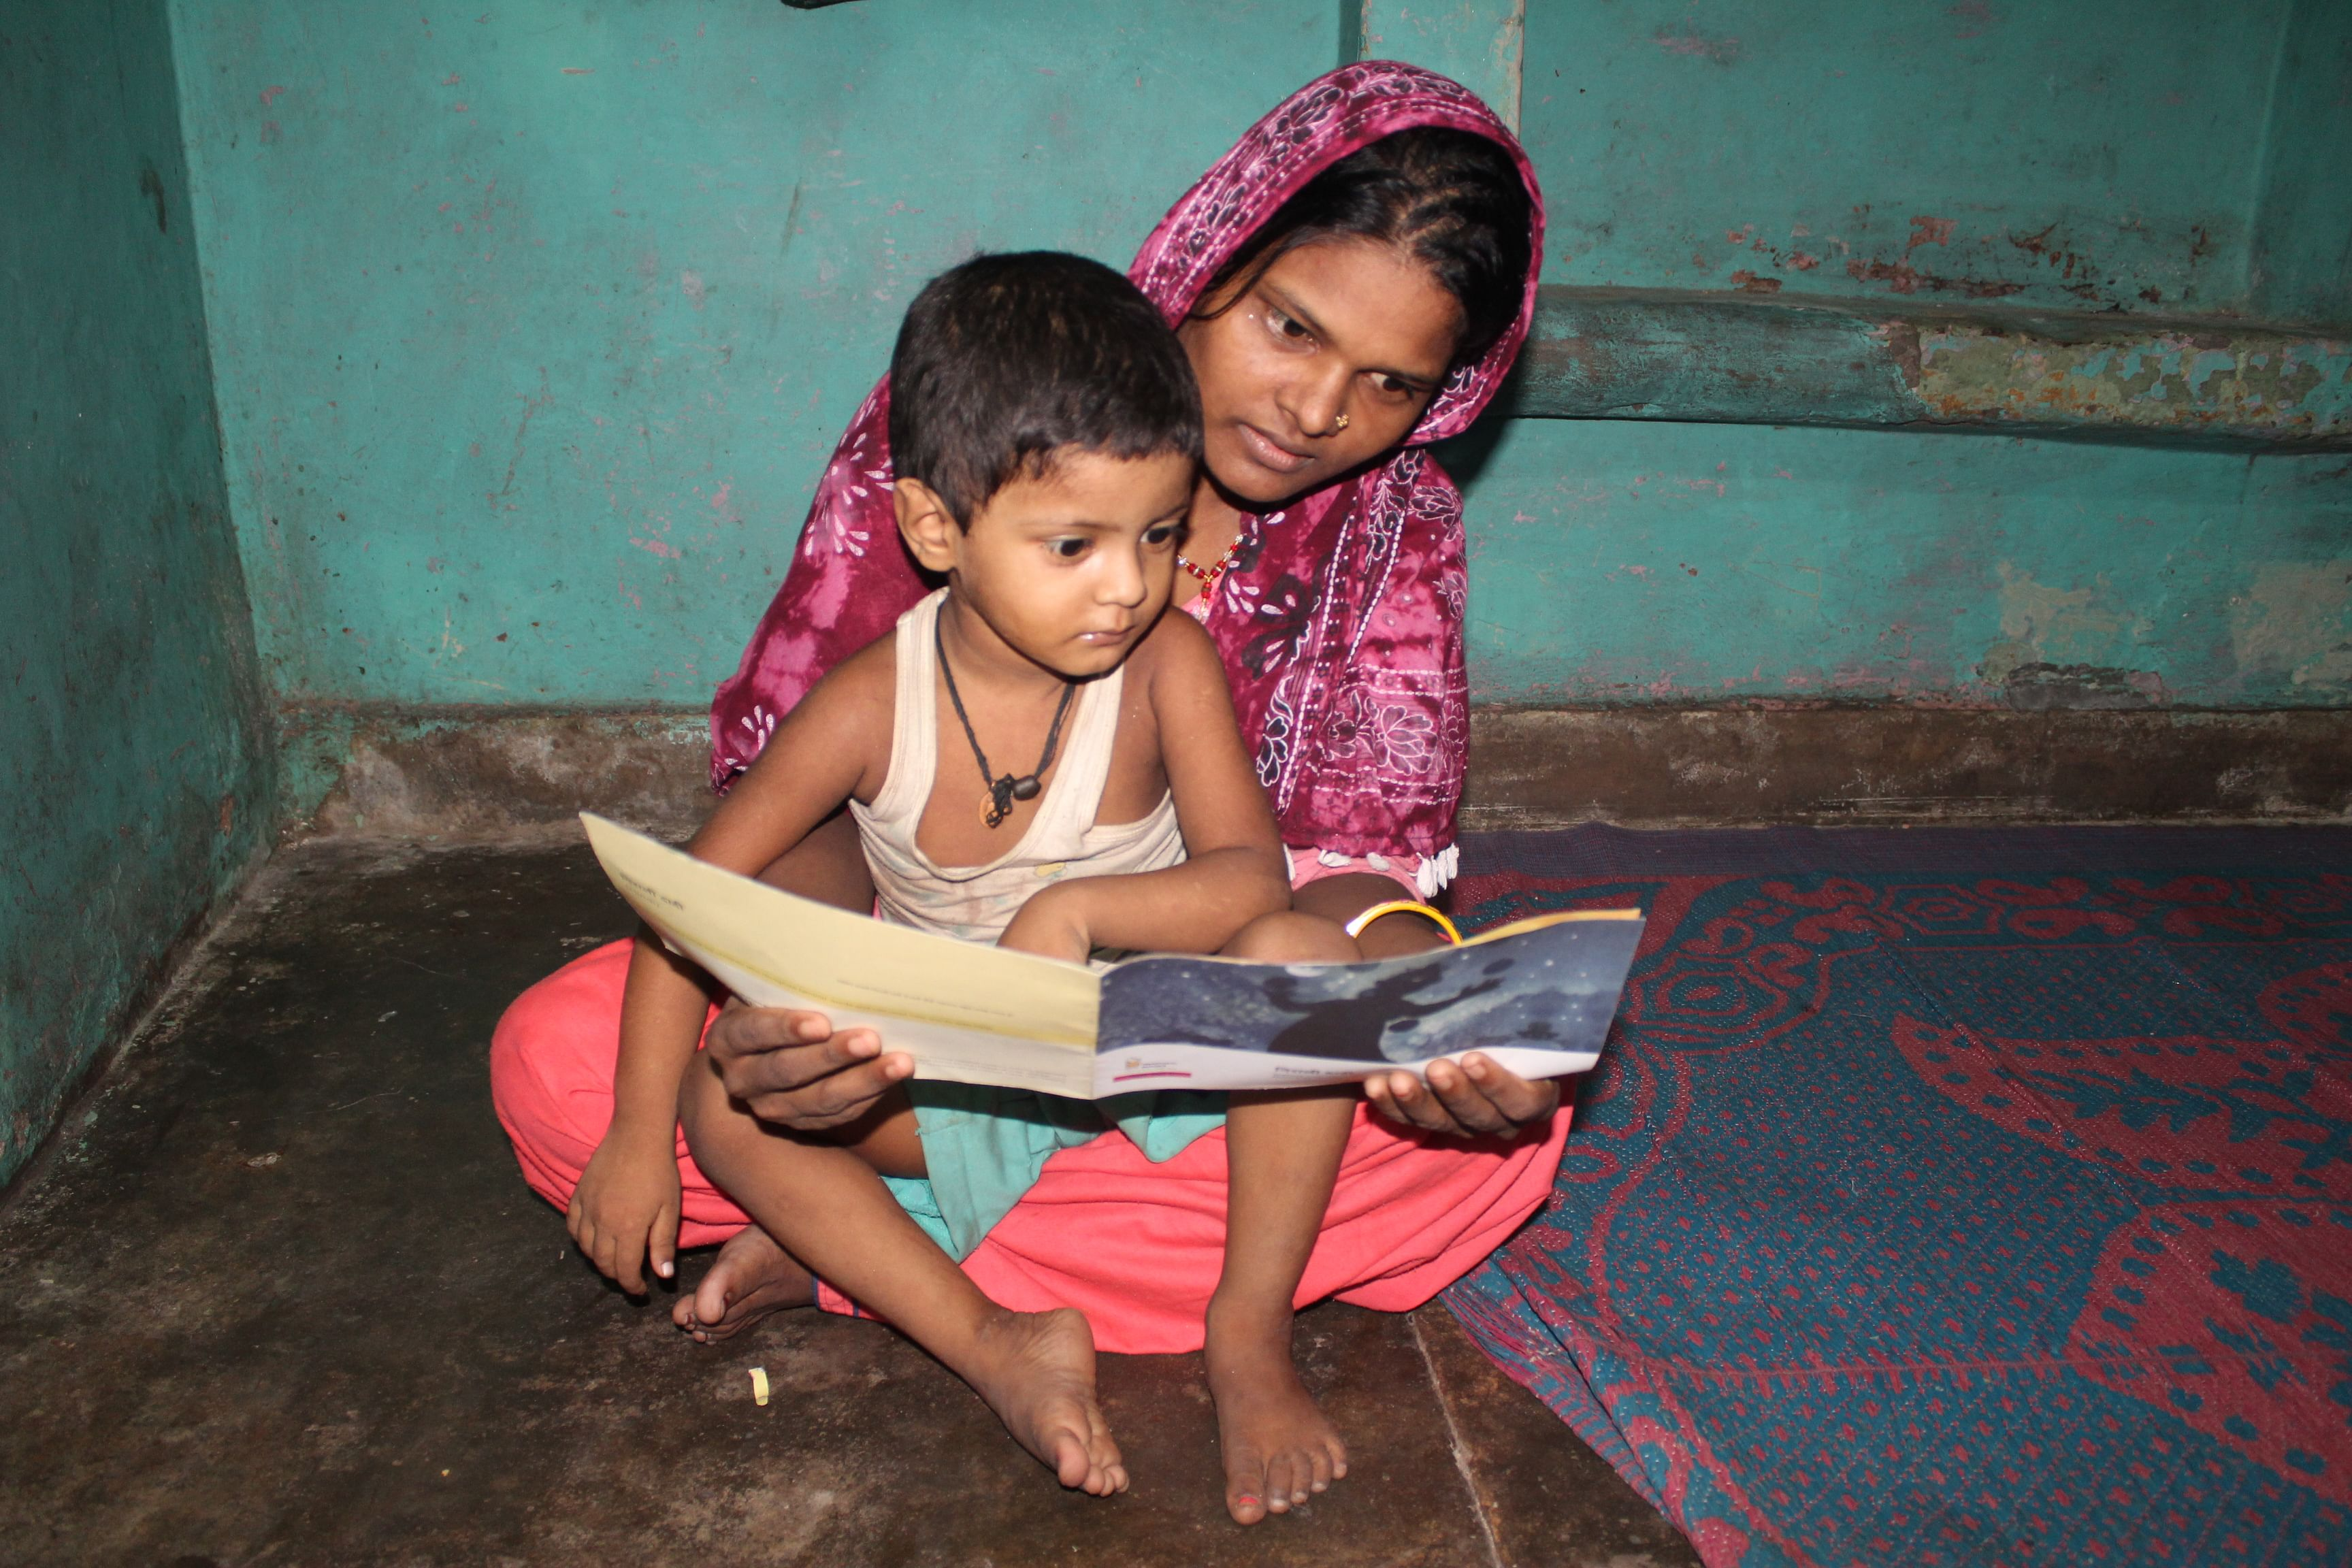 It is critical mothers get involved in their child's education. (Source: Saarthi)